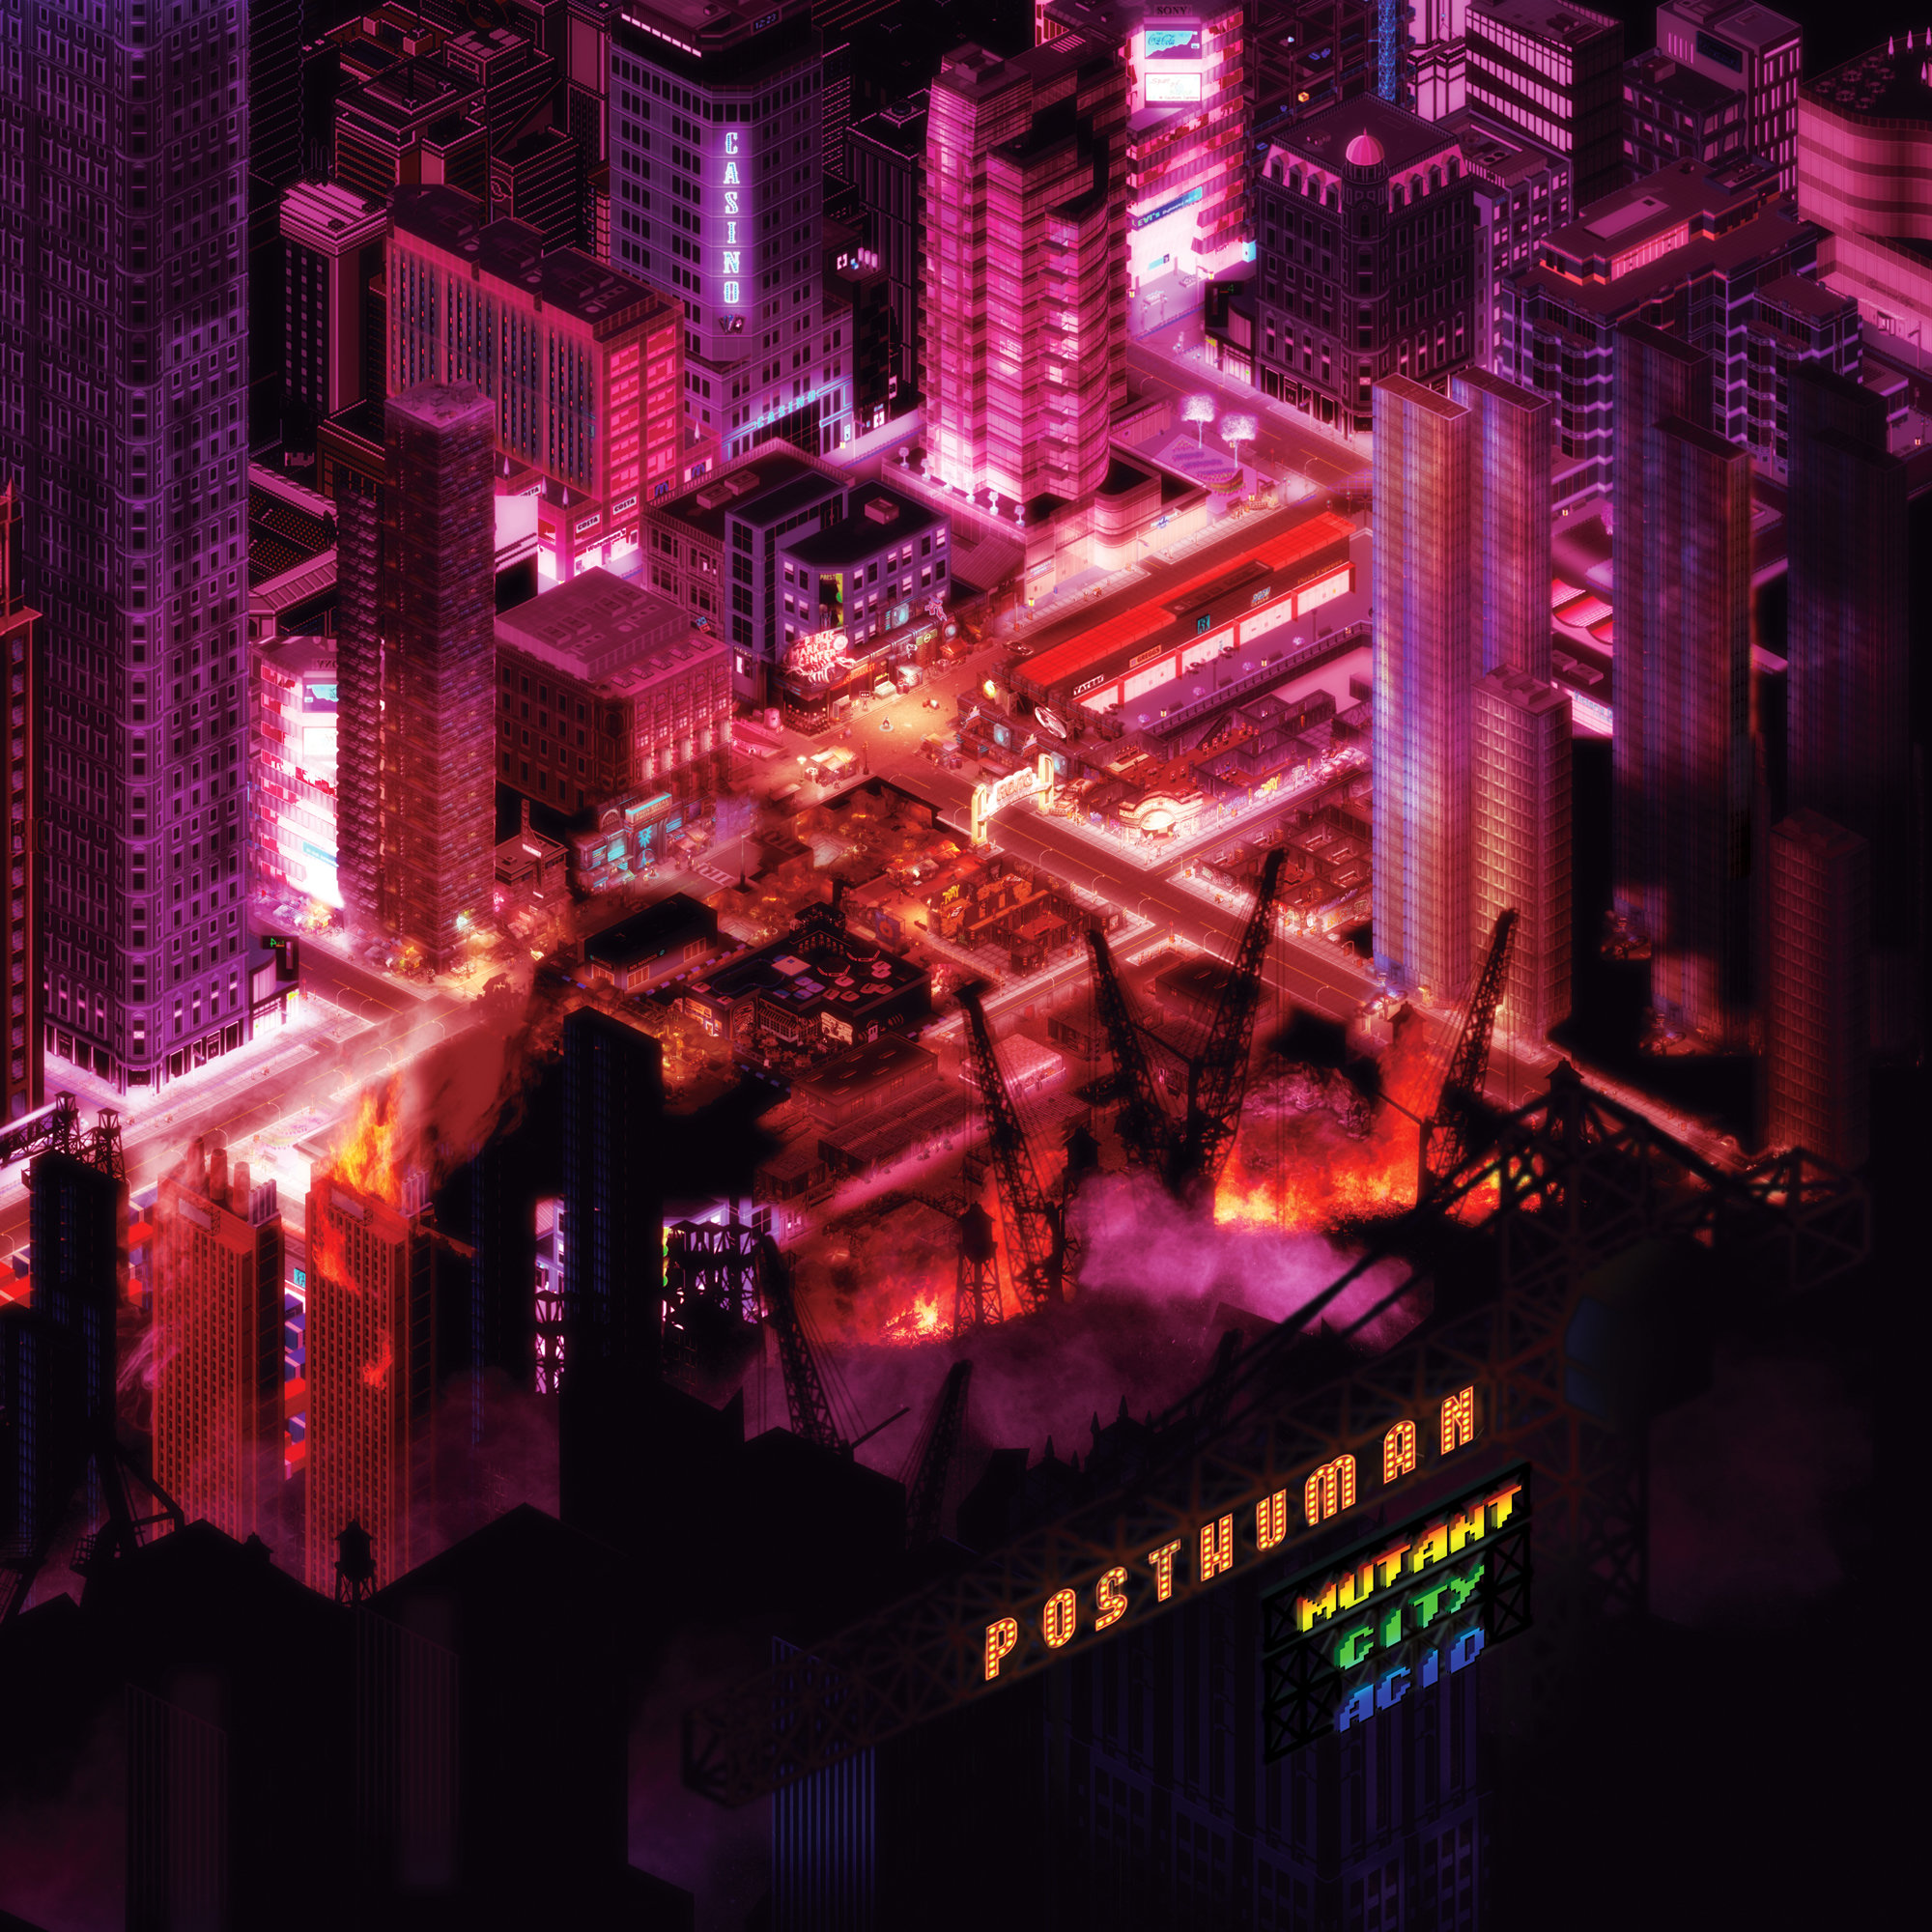 Posthuman/MUTANT CITY ACID DLP